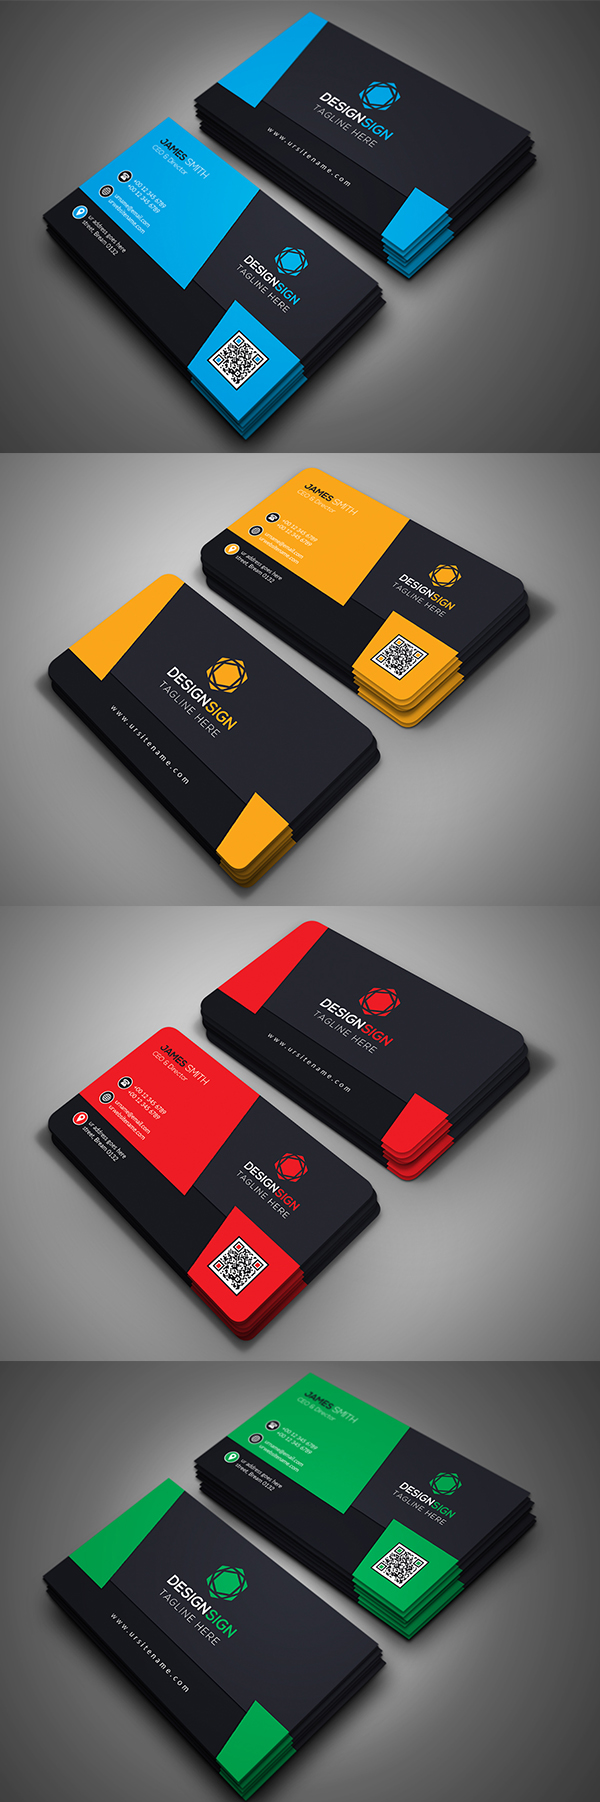 25 Business Card Design